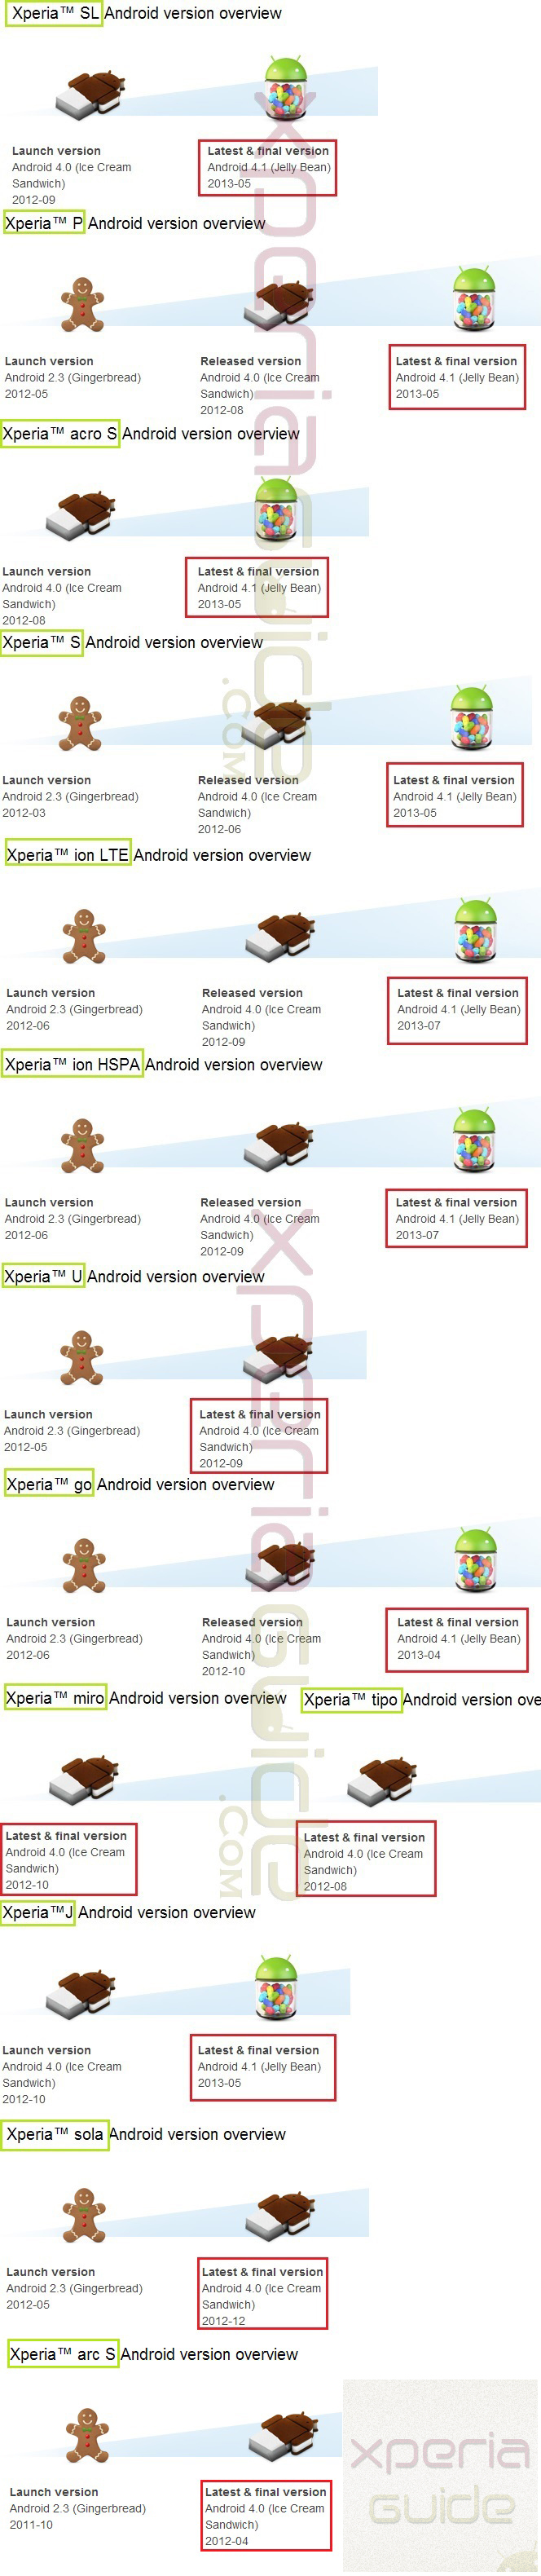 Sony Mobile Ends Future updates for Xperia S, SL, Acro S, Arc S, Ion, P, U, Go, Miro, Tipo, J, Sola